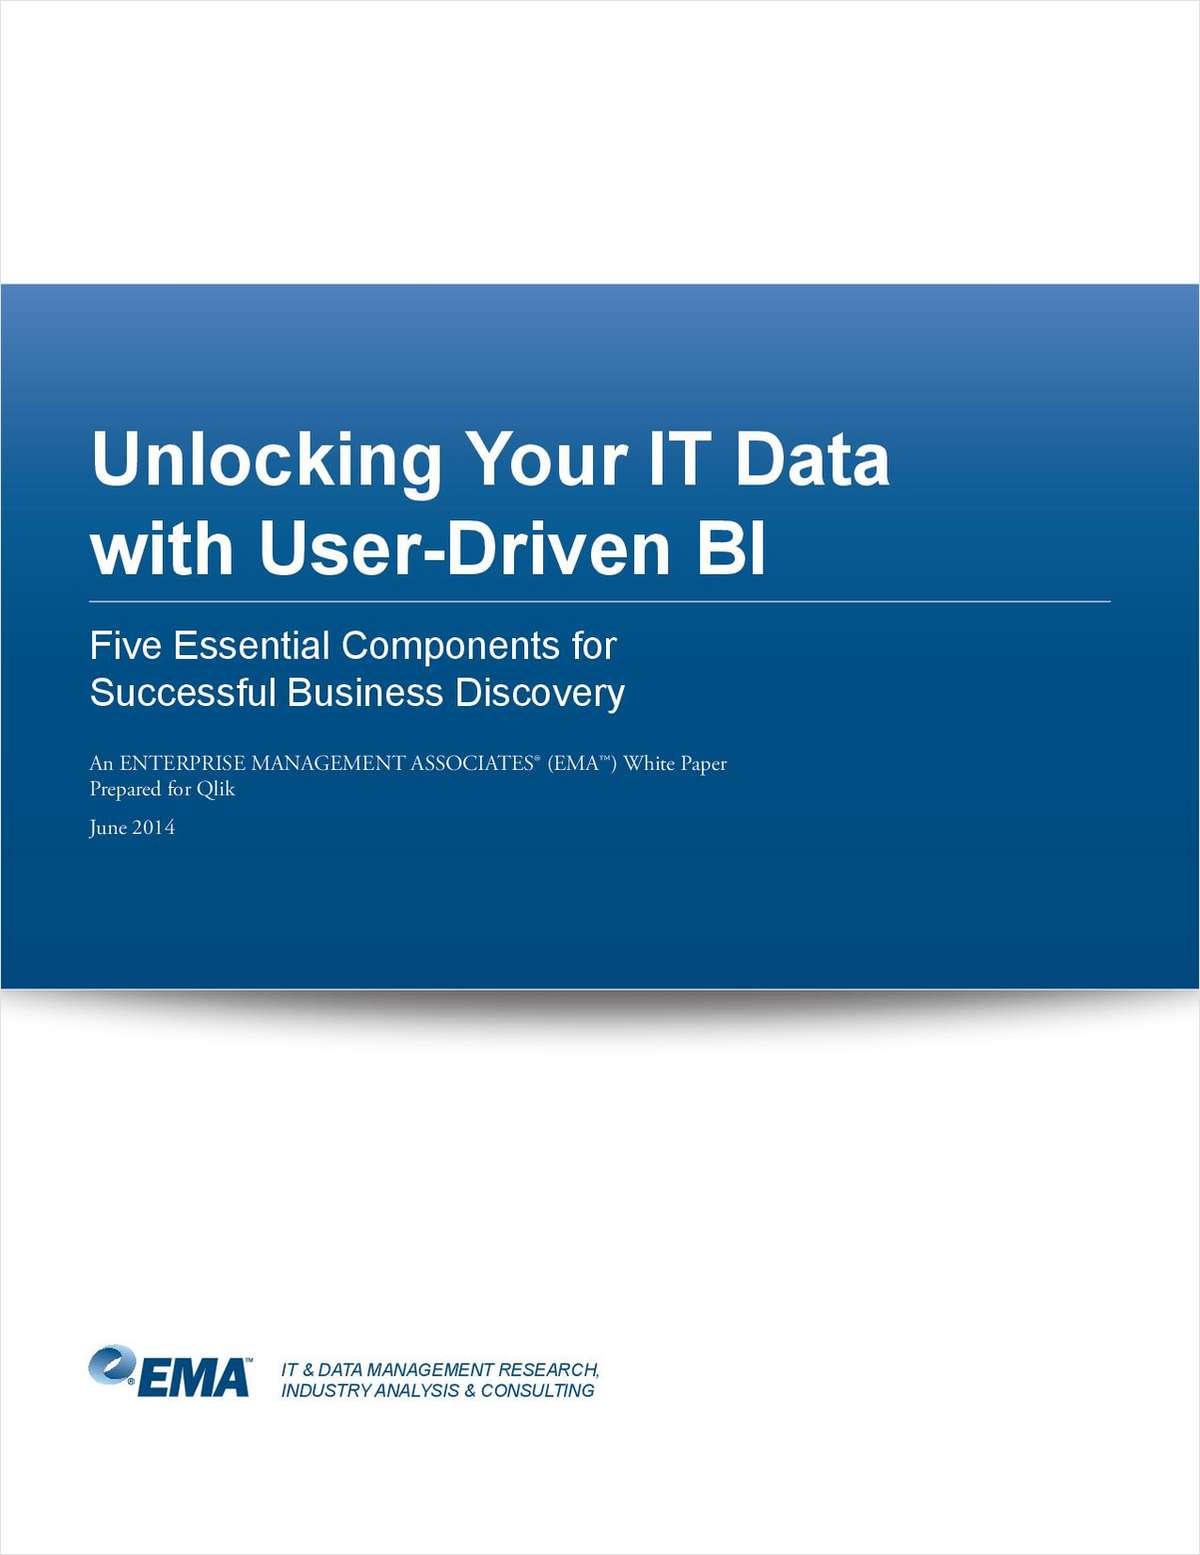 Unlocking Your IT Data with User-Driven BI